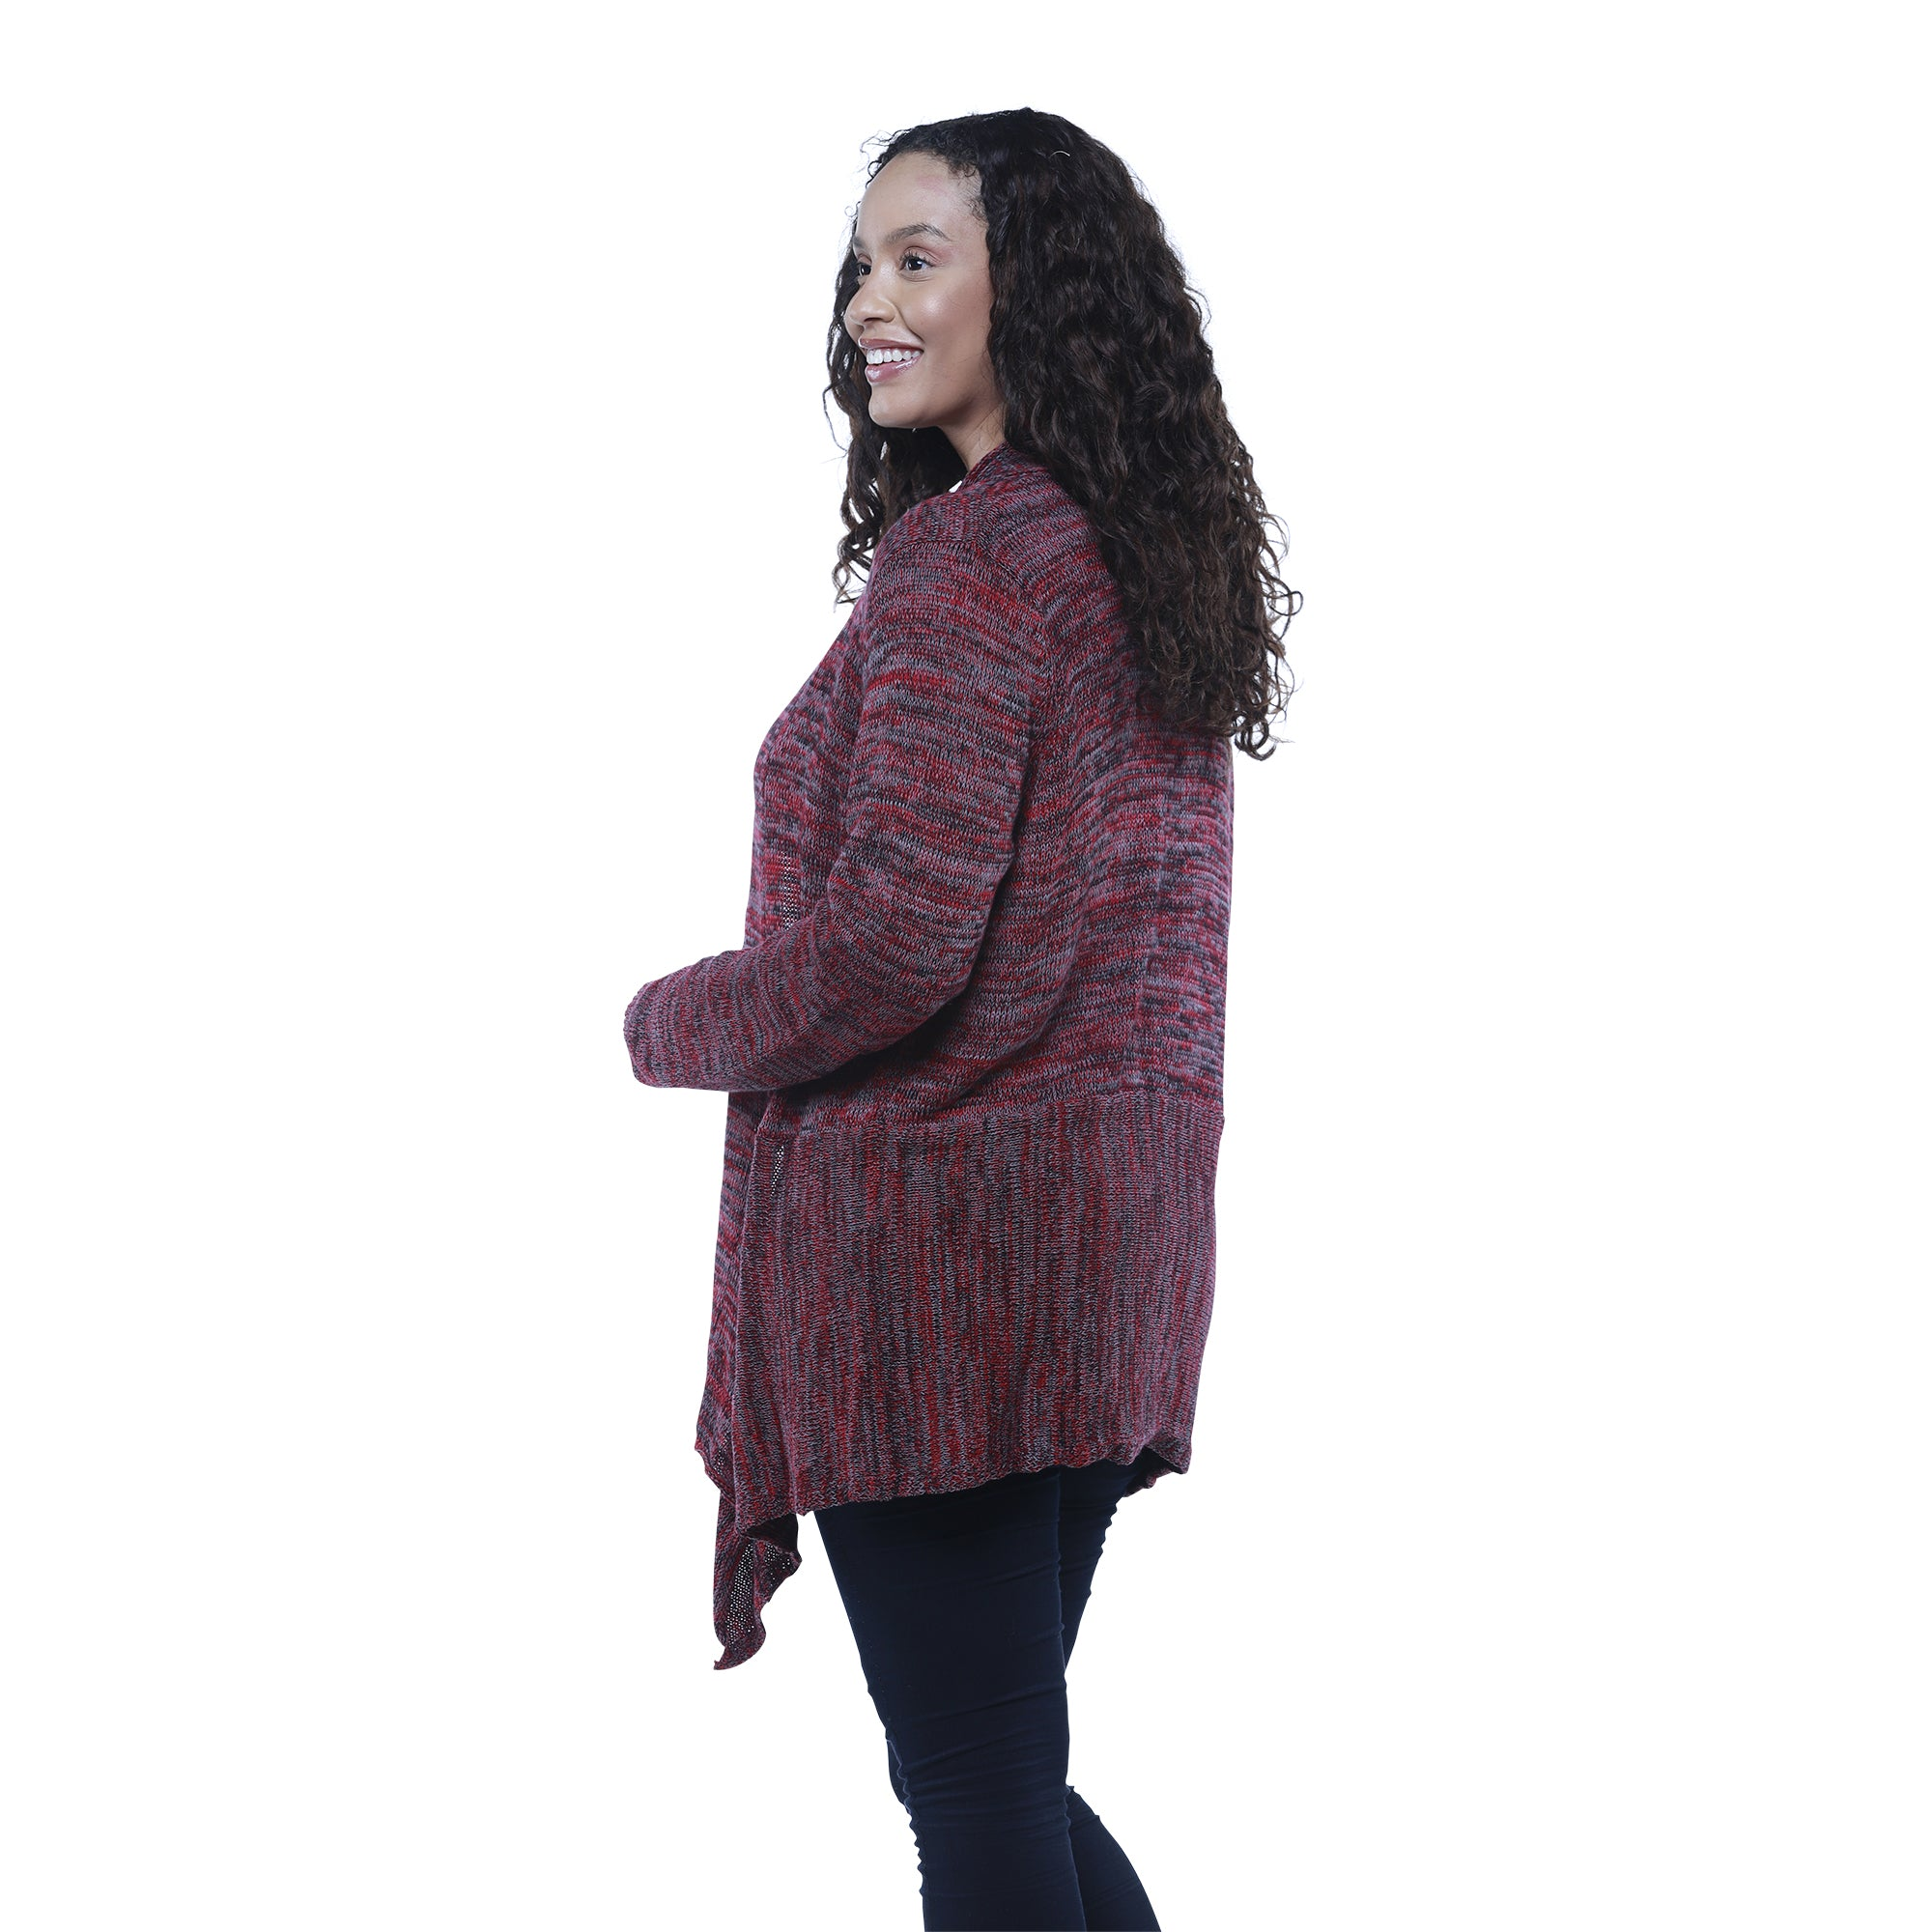 Cabin Space Dye Cardigan Sweater